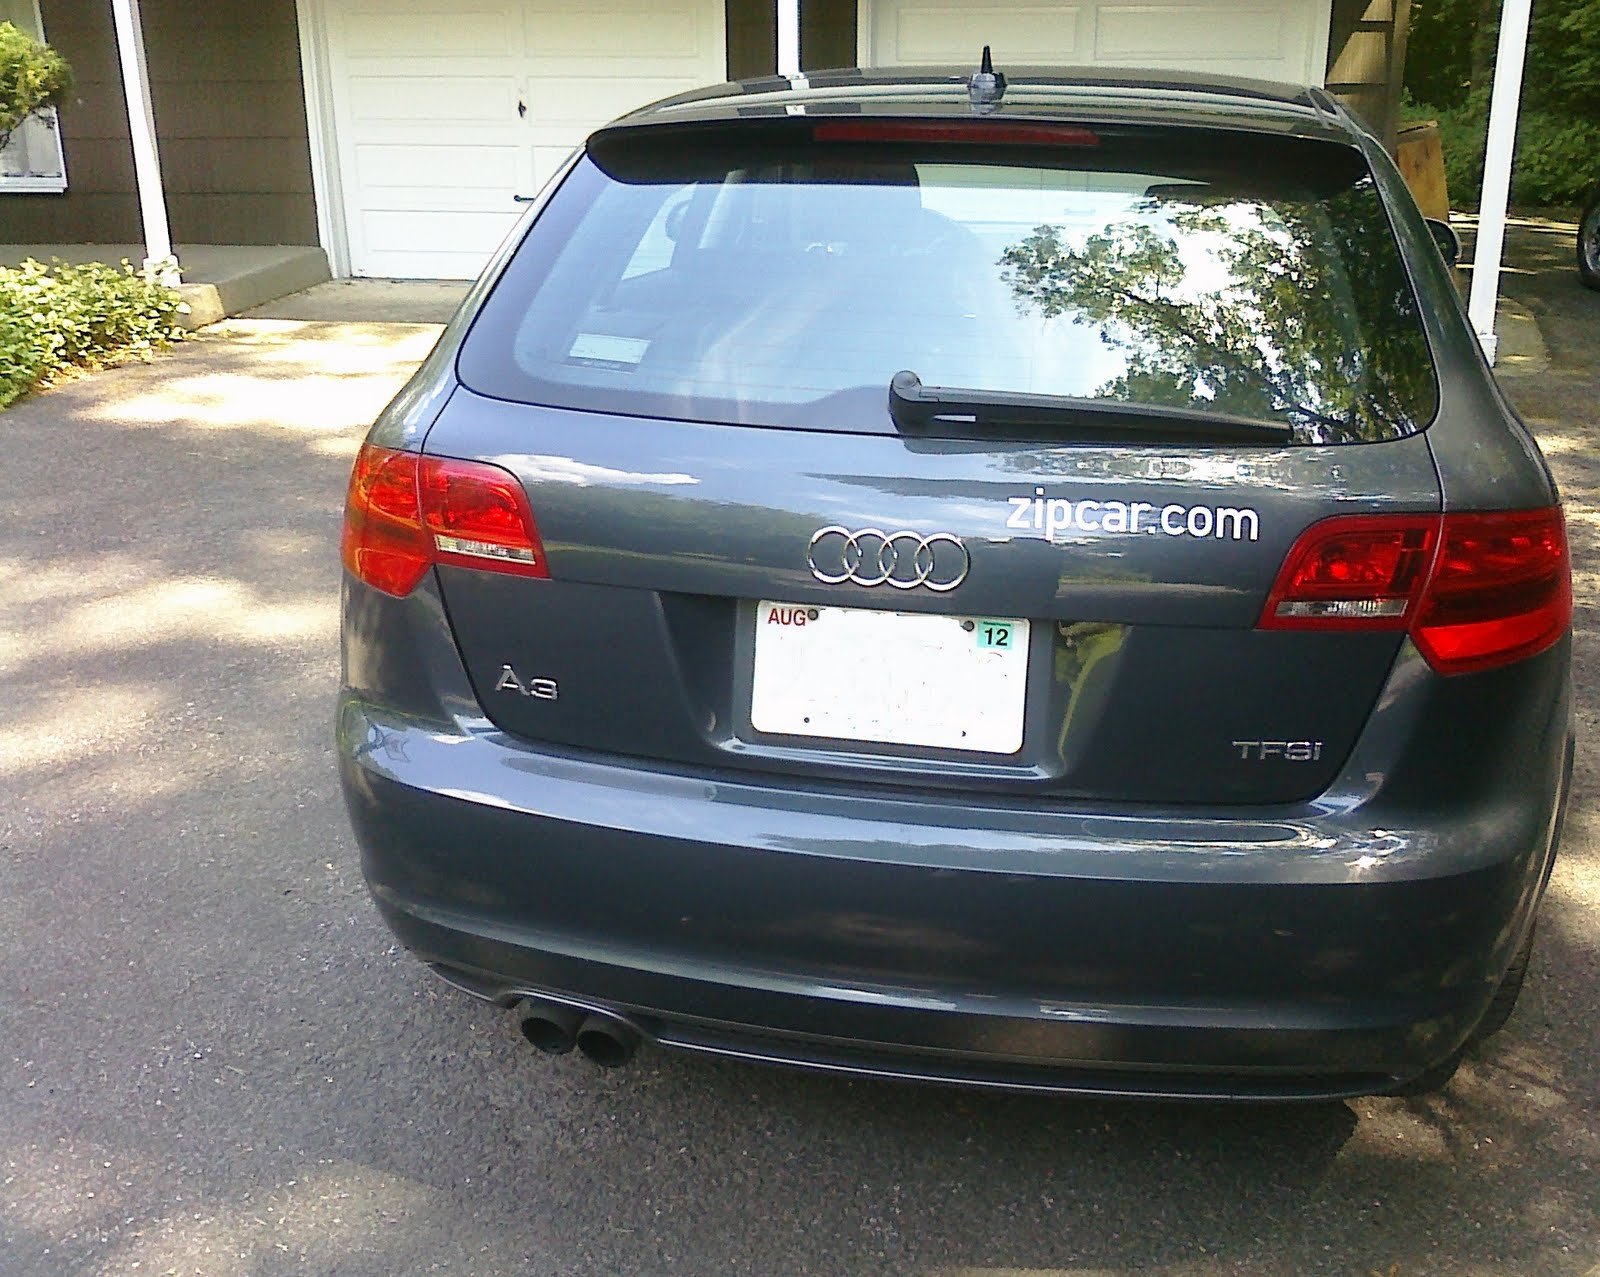 luxury car zipcar  You Are What You Drive - A Car Blog: I love Zipcar...and the Audi A3